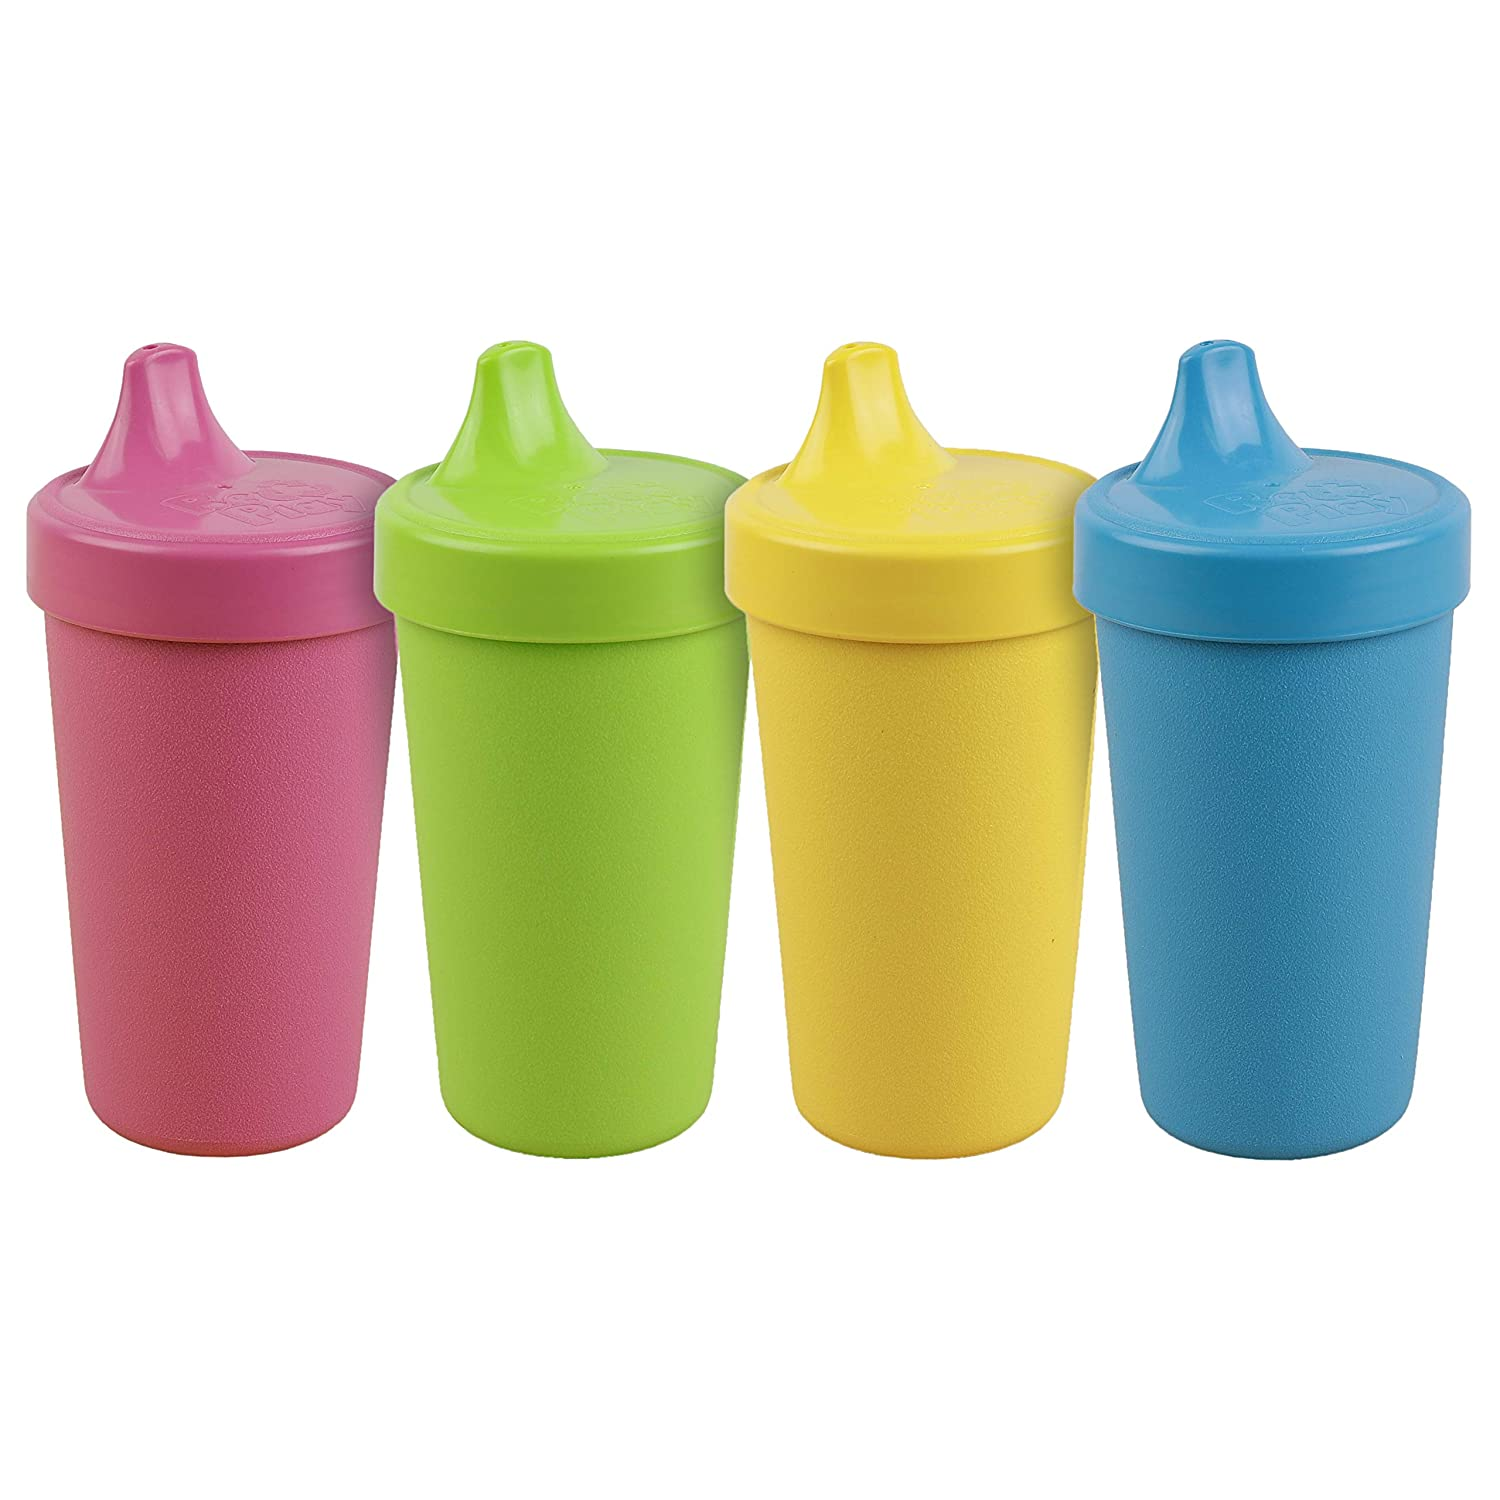 Re-Play Made in The USA 4pk No Spill Cups for Baby, Toddler, and Child Feeding in Bright Pink, Blush, Purple and Amethyst | Made from Eco Friendly Heavyweight Recycled Milk Jugs | (Princess+) : Baby